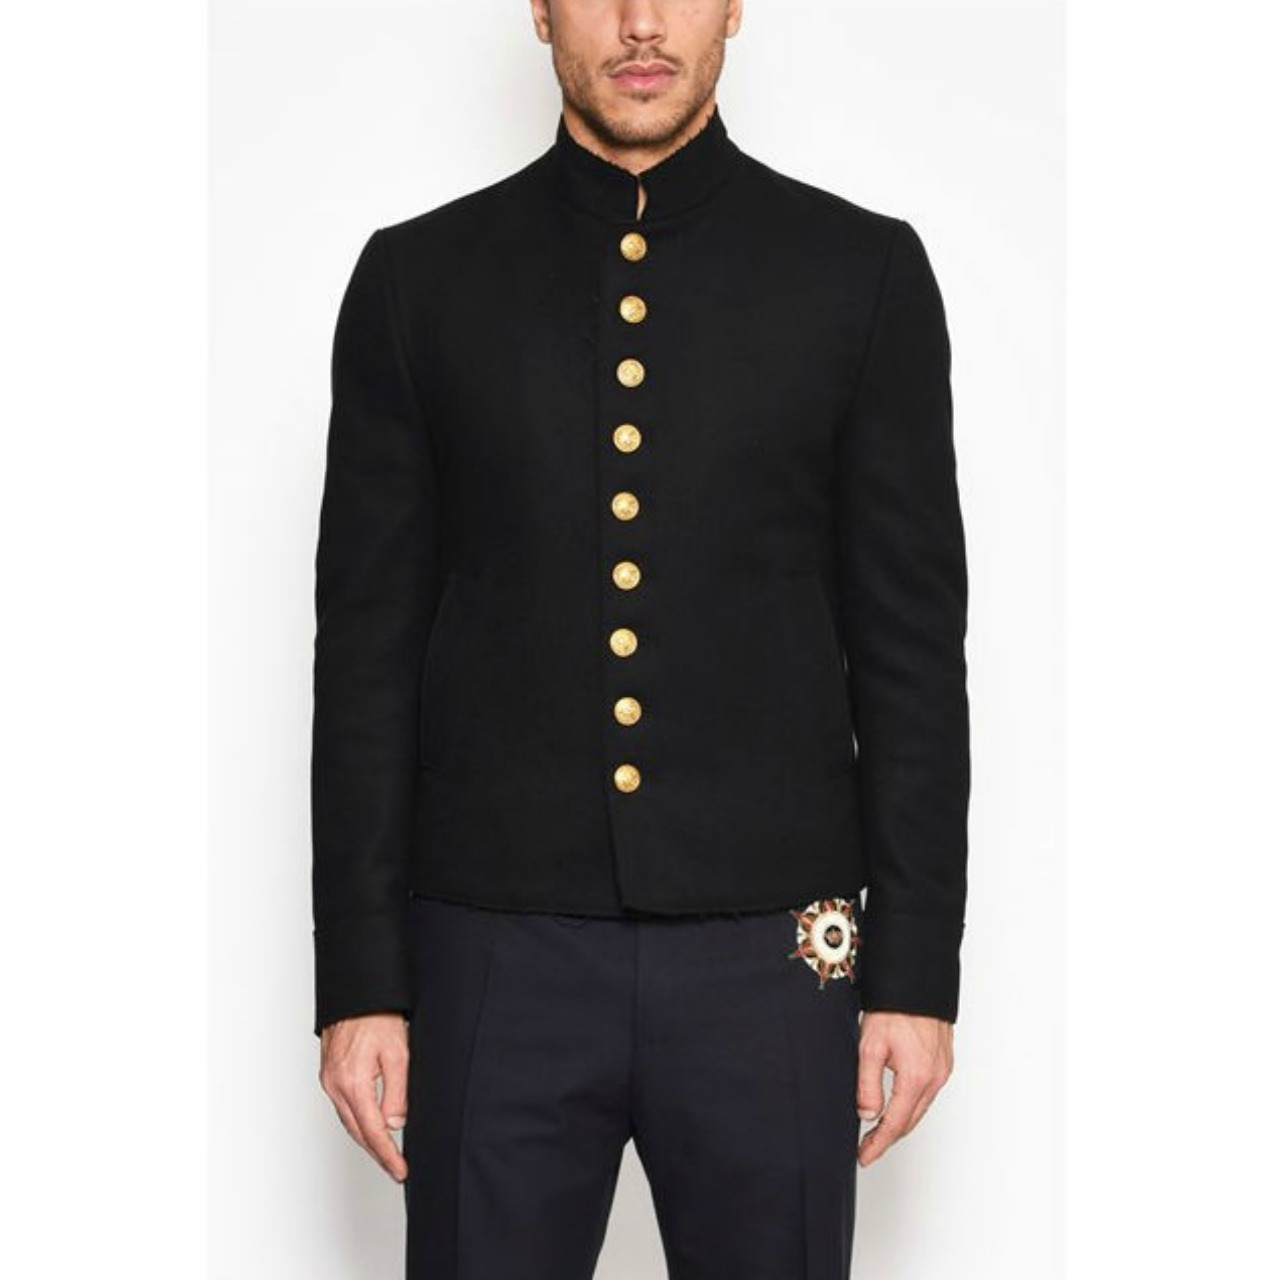 *DOLCE&GABBANA*'MARSINA' MILITARY JACKET WITH GOLD BUTTONS